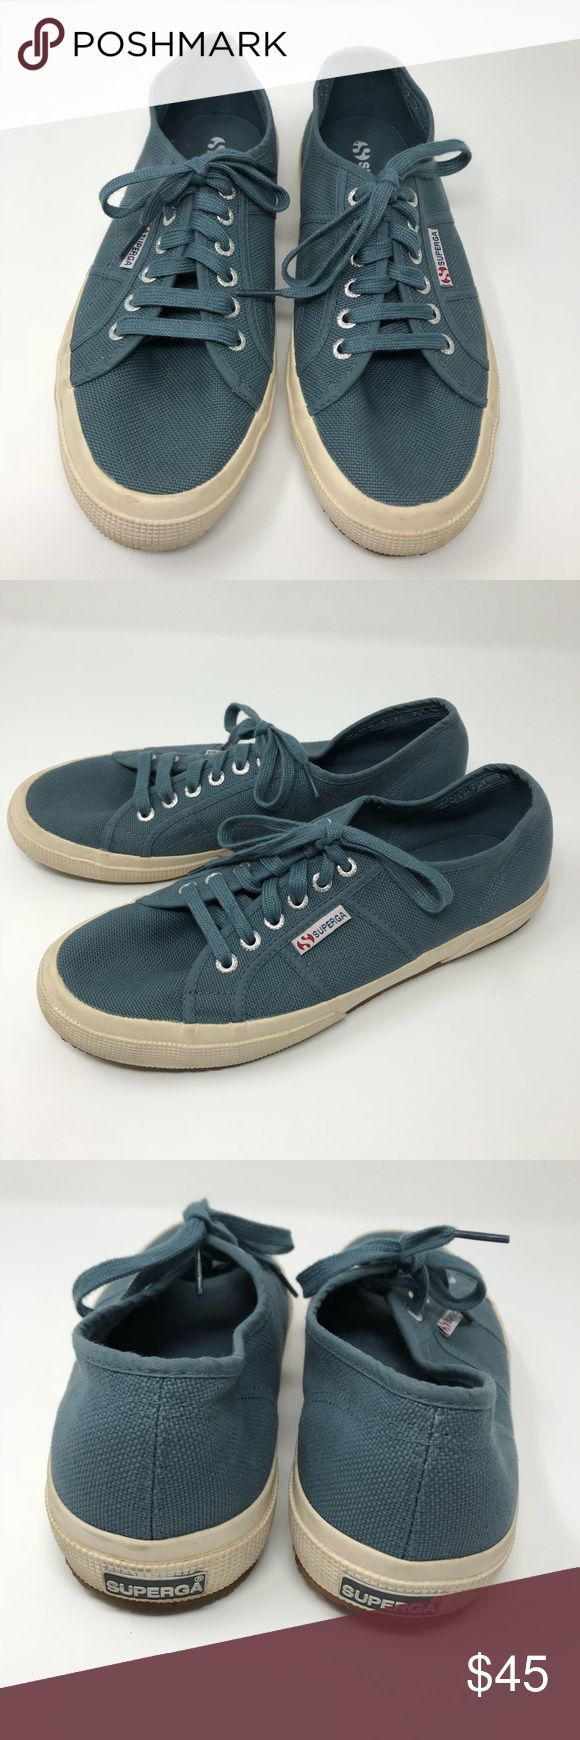 [Superga] men's classic canvas sneaker smokey blue [Superga] men's classic canvas tennis shoe sneakers smokey blue •🆕listing •good pre-owned condition, only worn a few times •size 8.5/EU 41.5 •Smokey blue teal color with cream rubber sole •offers and bundles welcomed Superga Shoes Sneakers